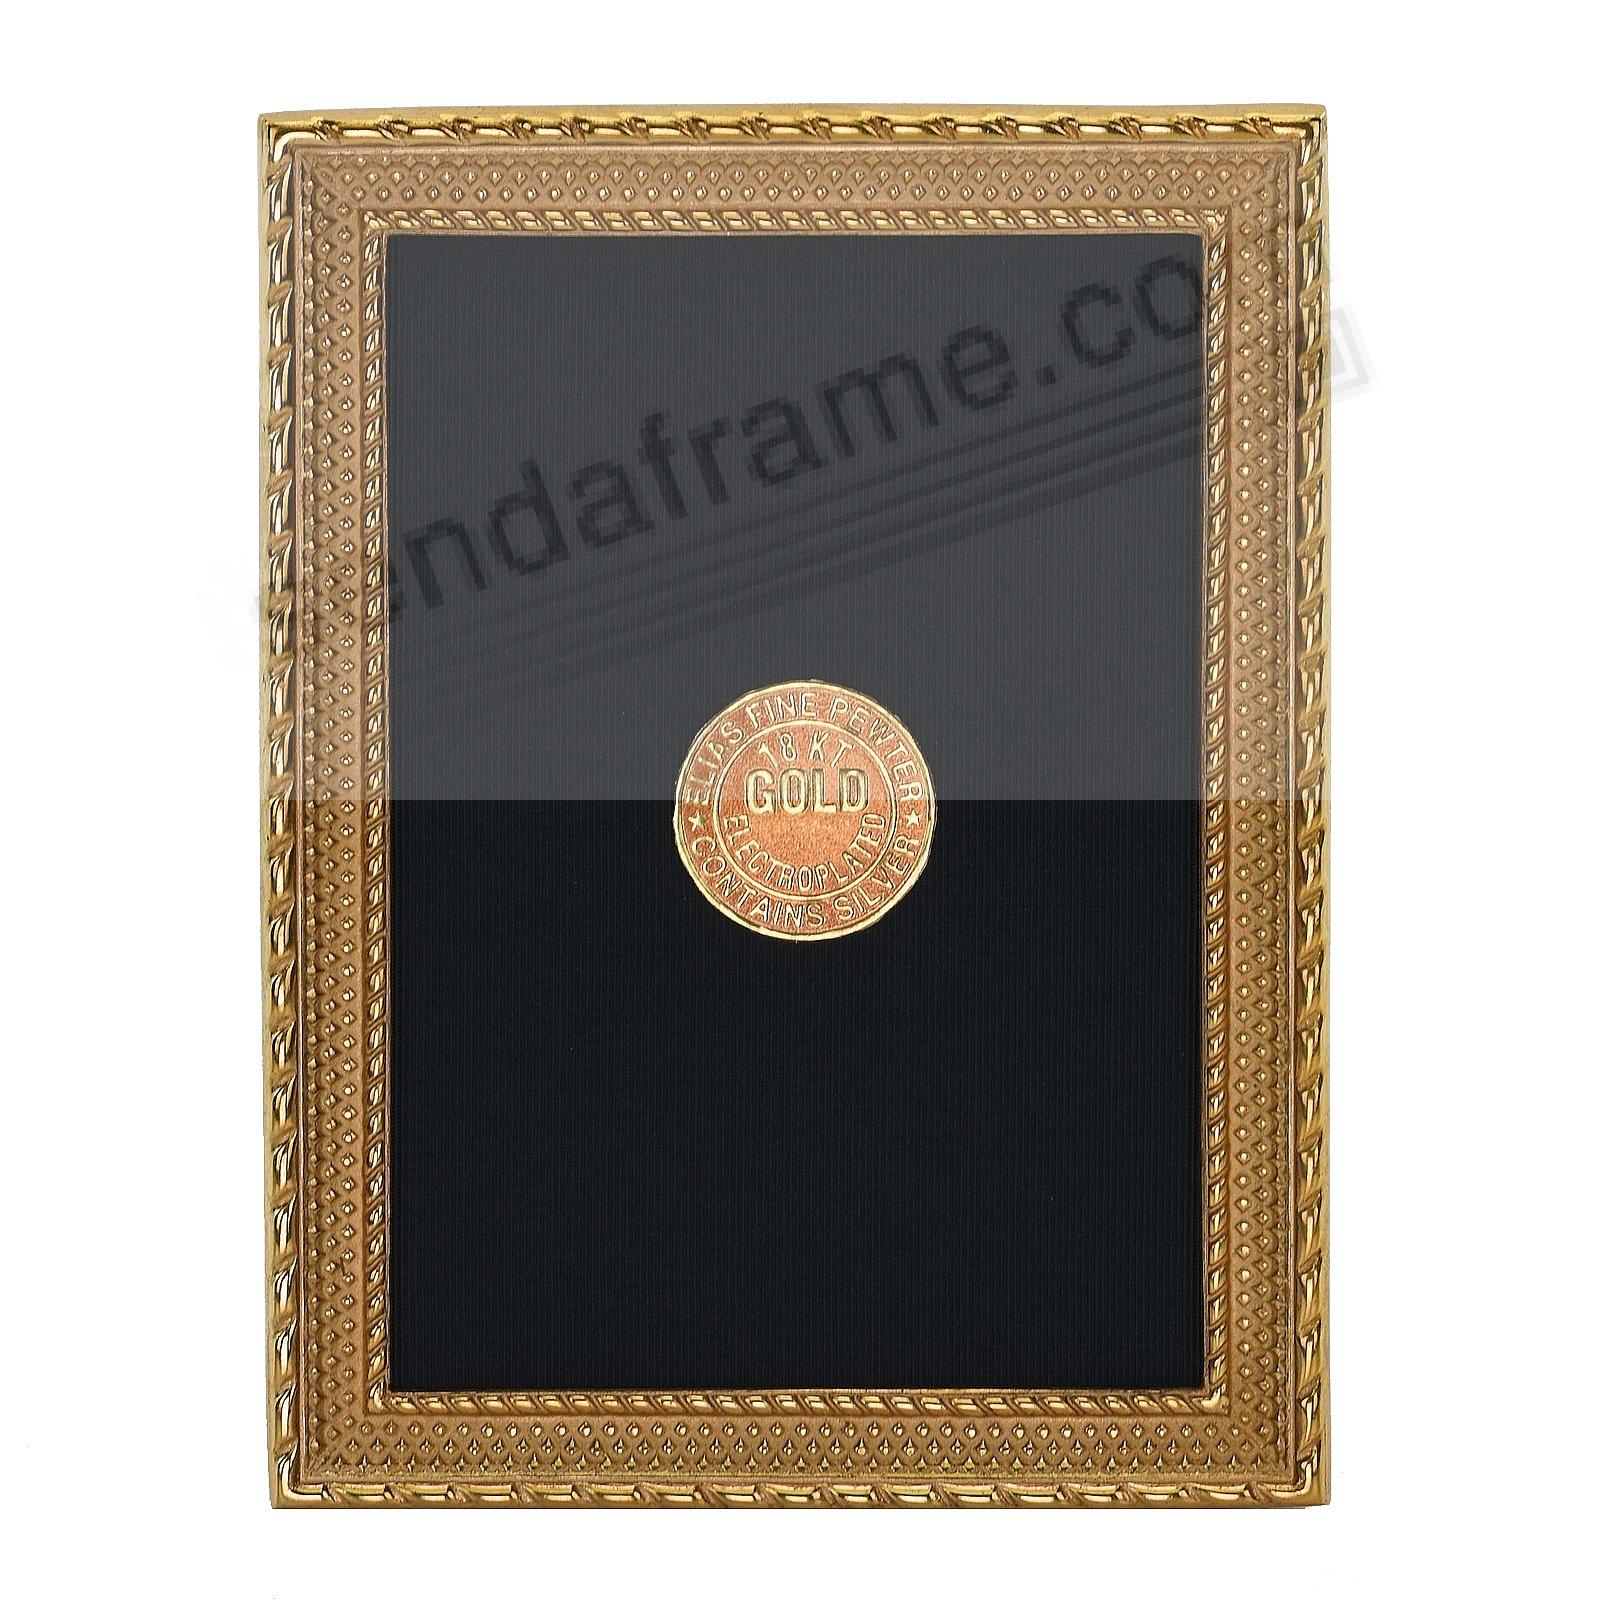 DOT-TO-DOT 18kt Gold Vermeil over fine Pewter 2½x3½ frame by Elias Artmetal®